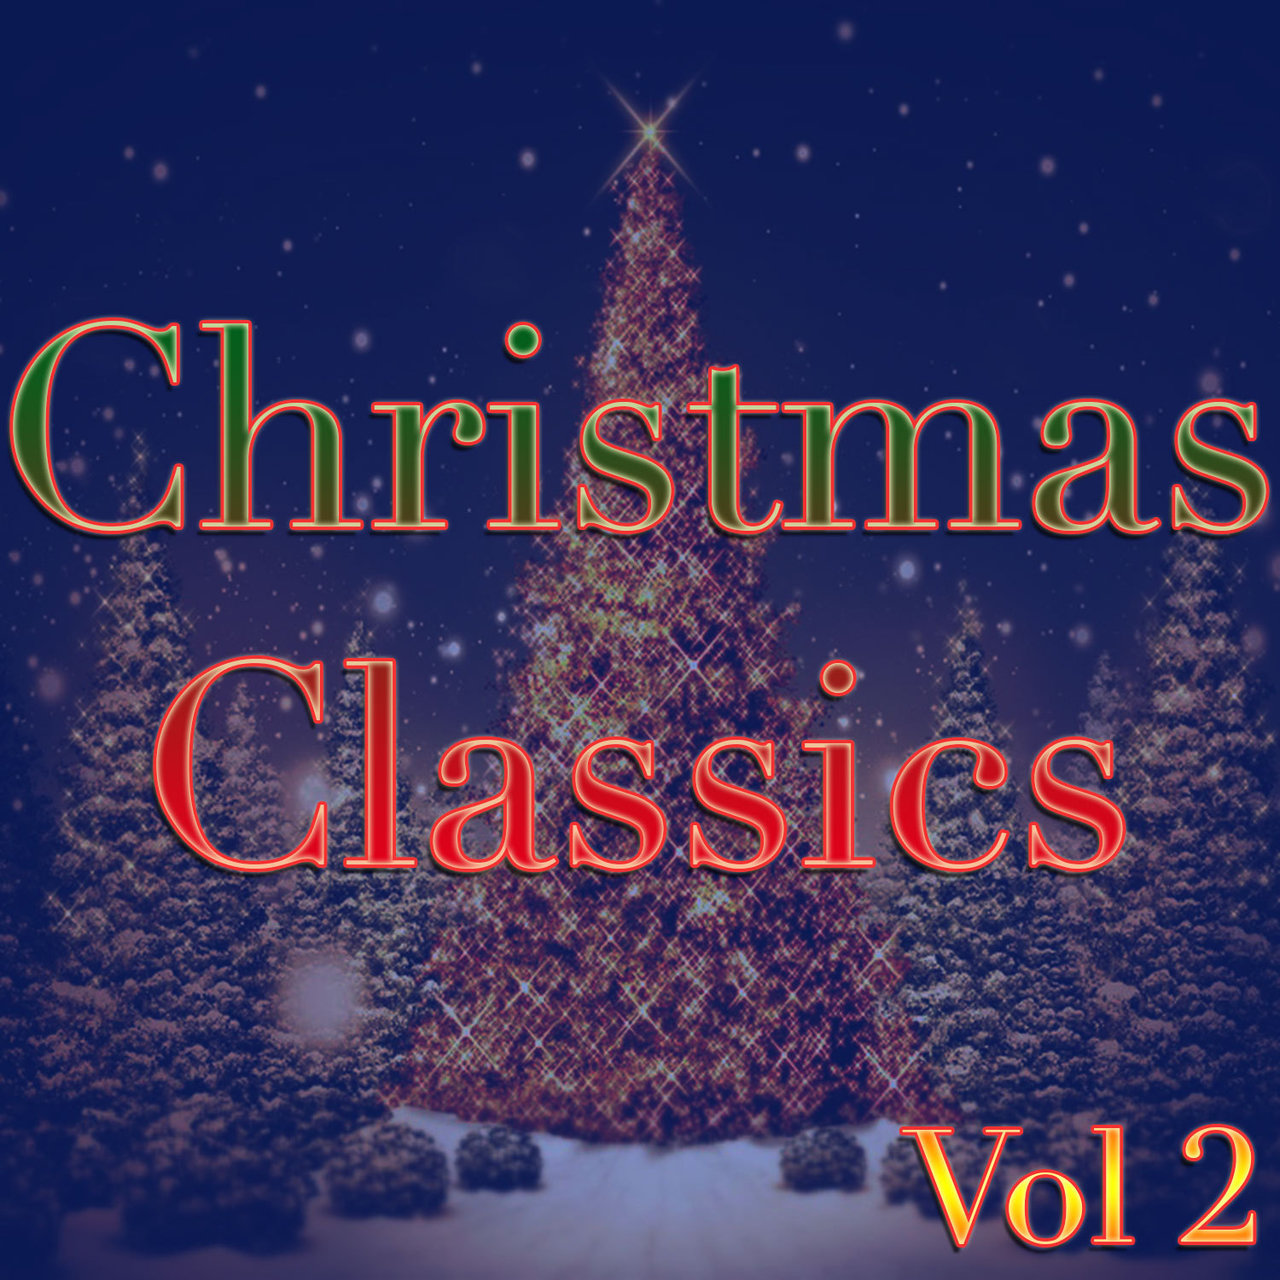 Old fashioned christmas songs list 14